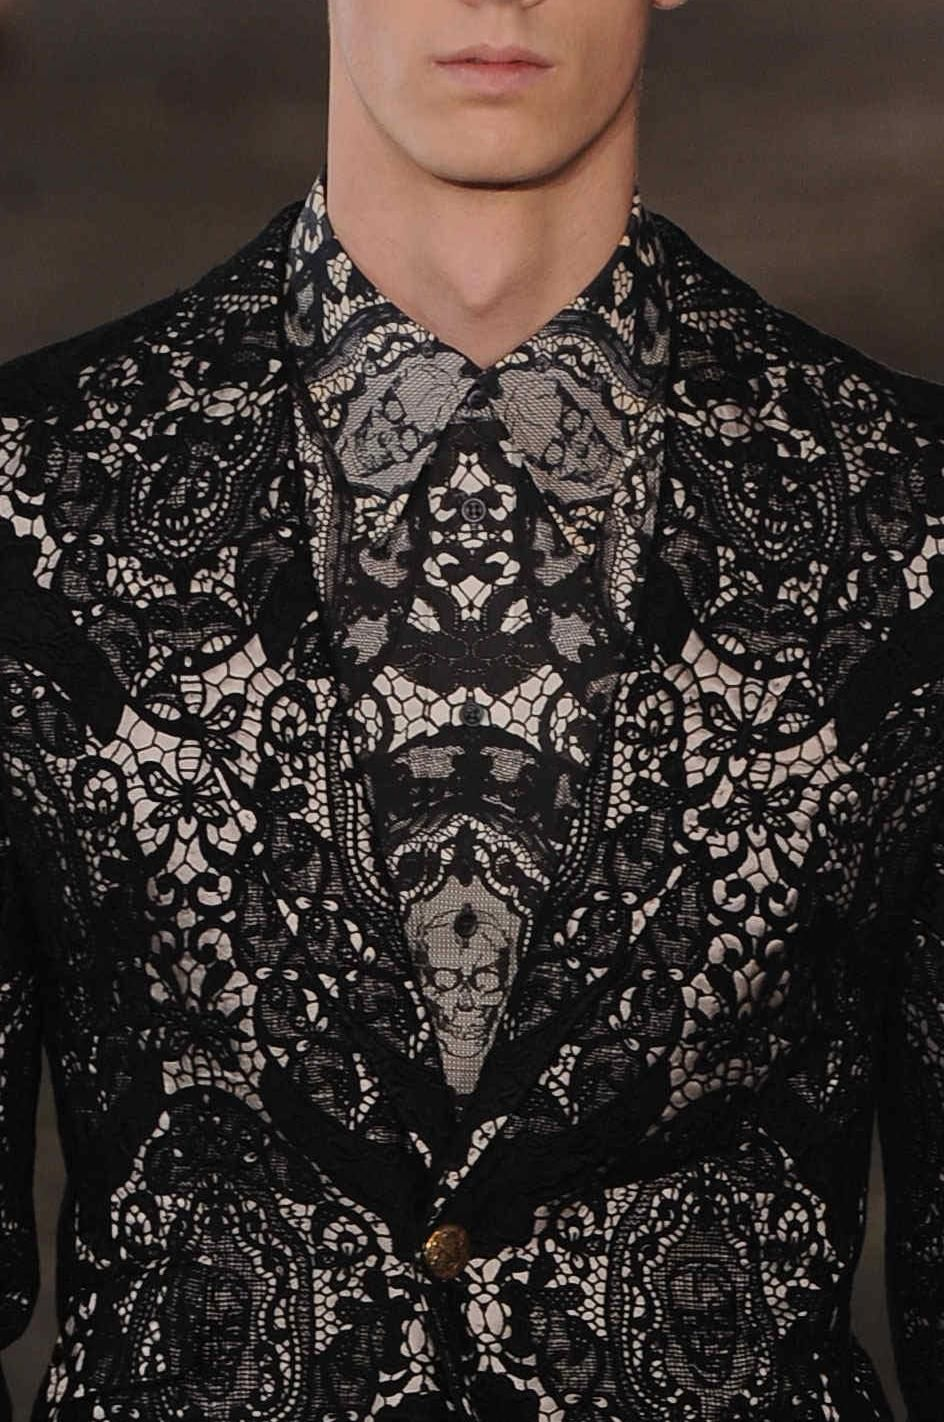 dacde7a51 Lace print for you brave guys - Alexander McQueen, of course | Men's ...